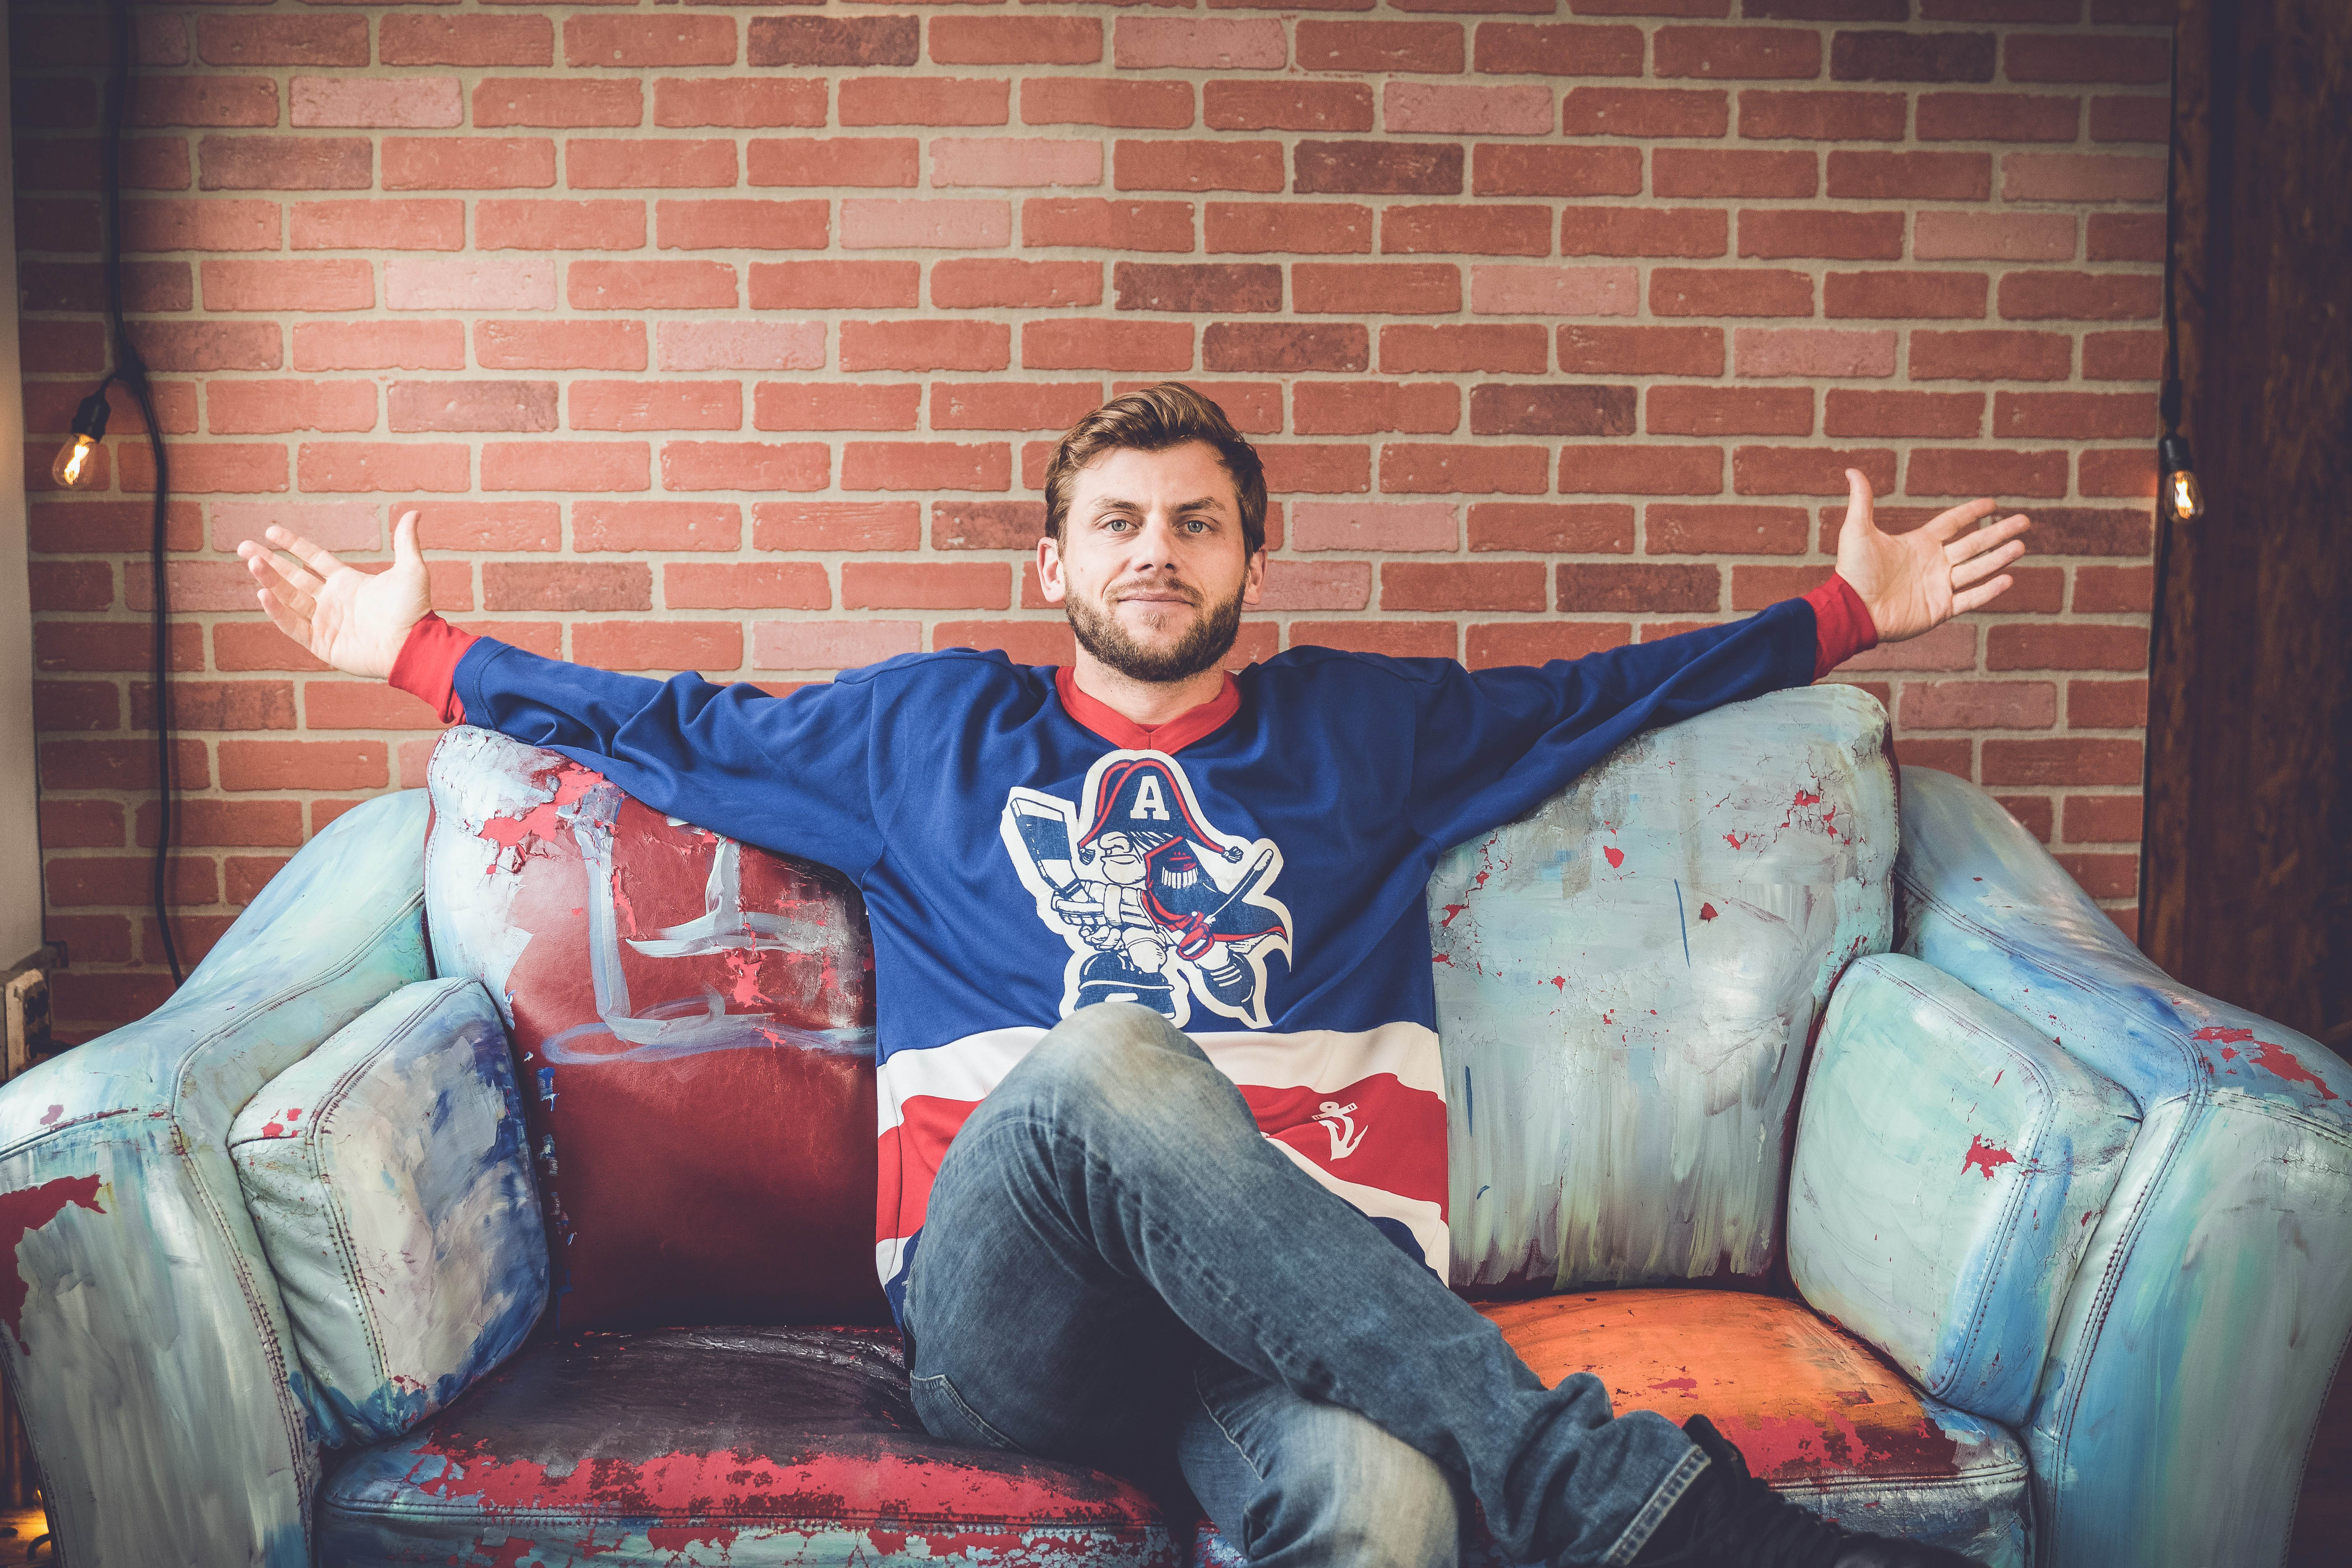 Charlie Berens Live at the Wild Eagle Lodge September 25th at 7pm